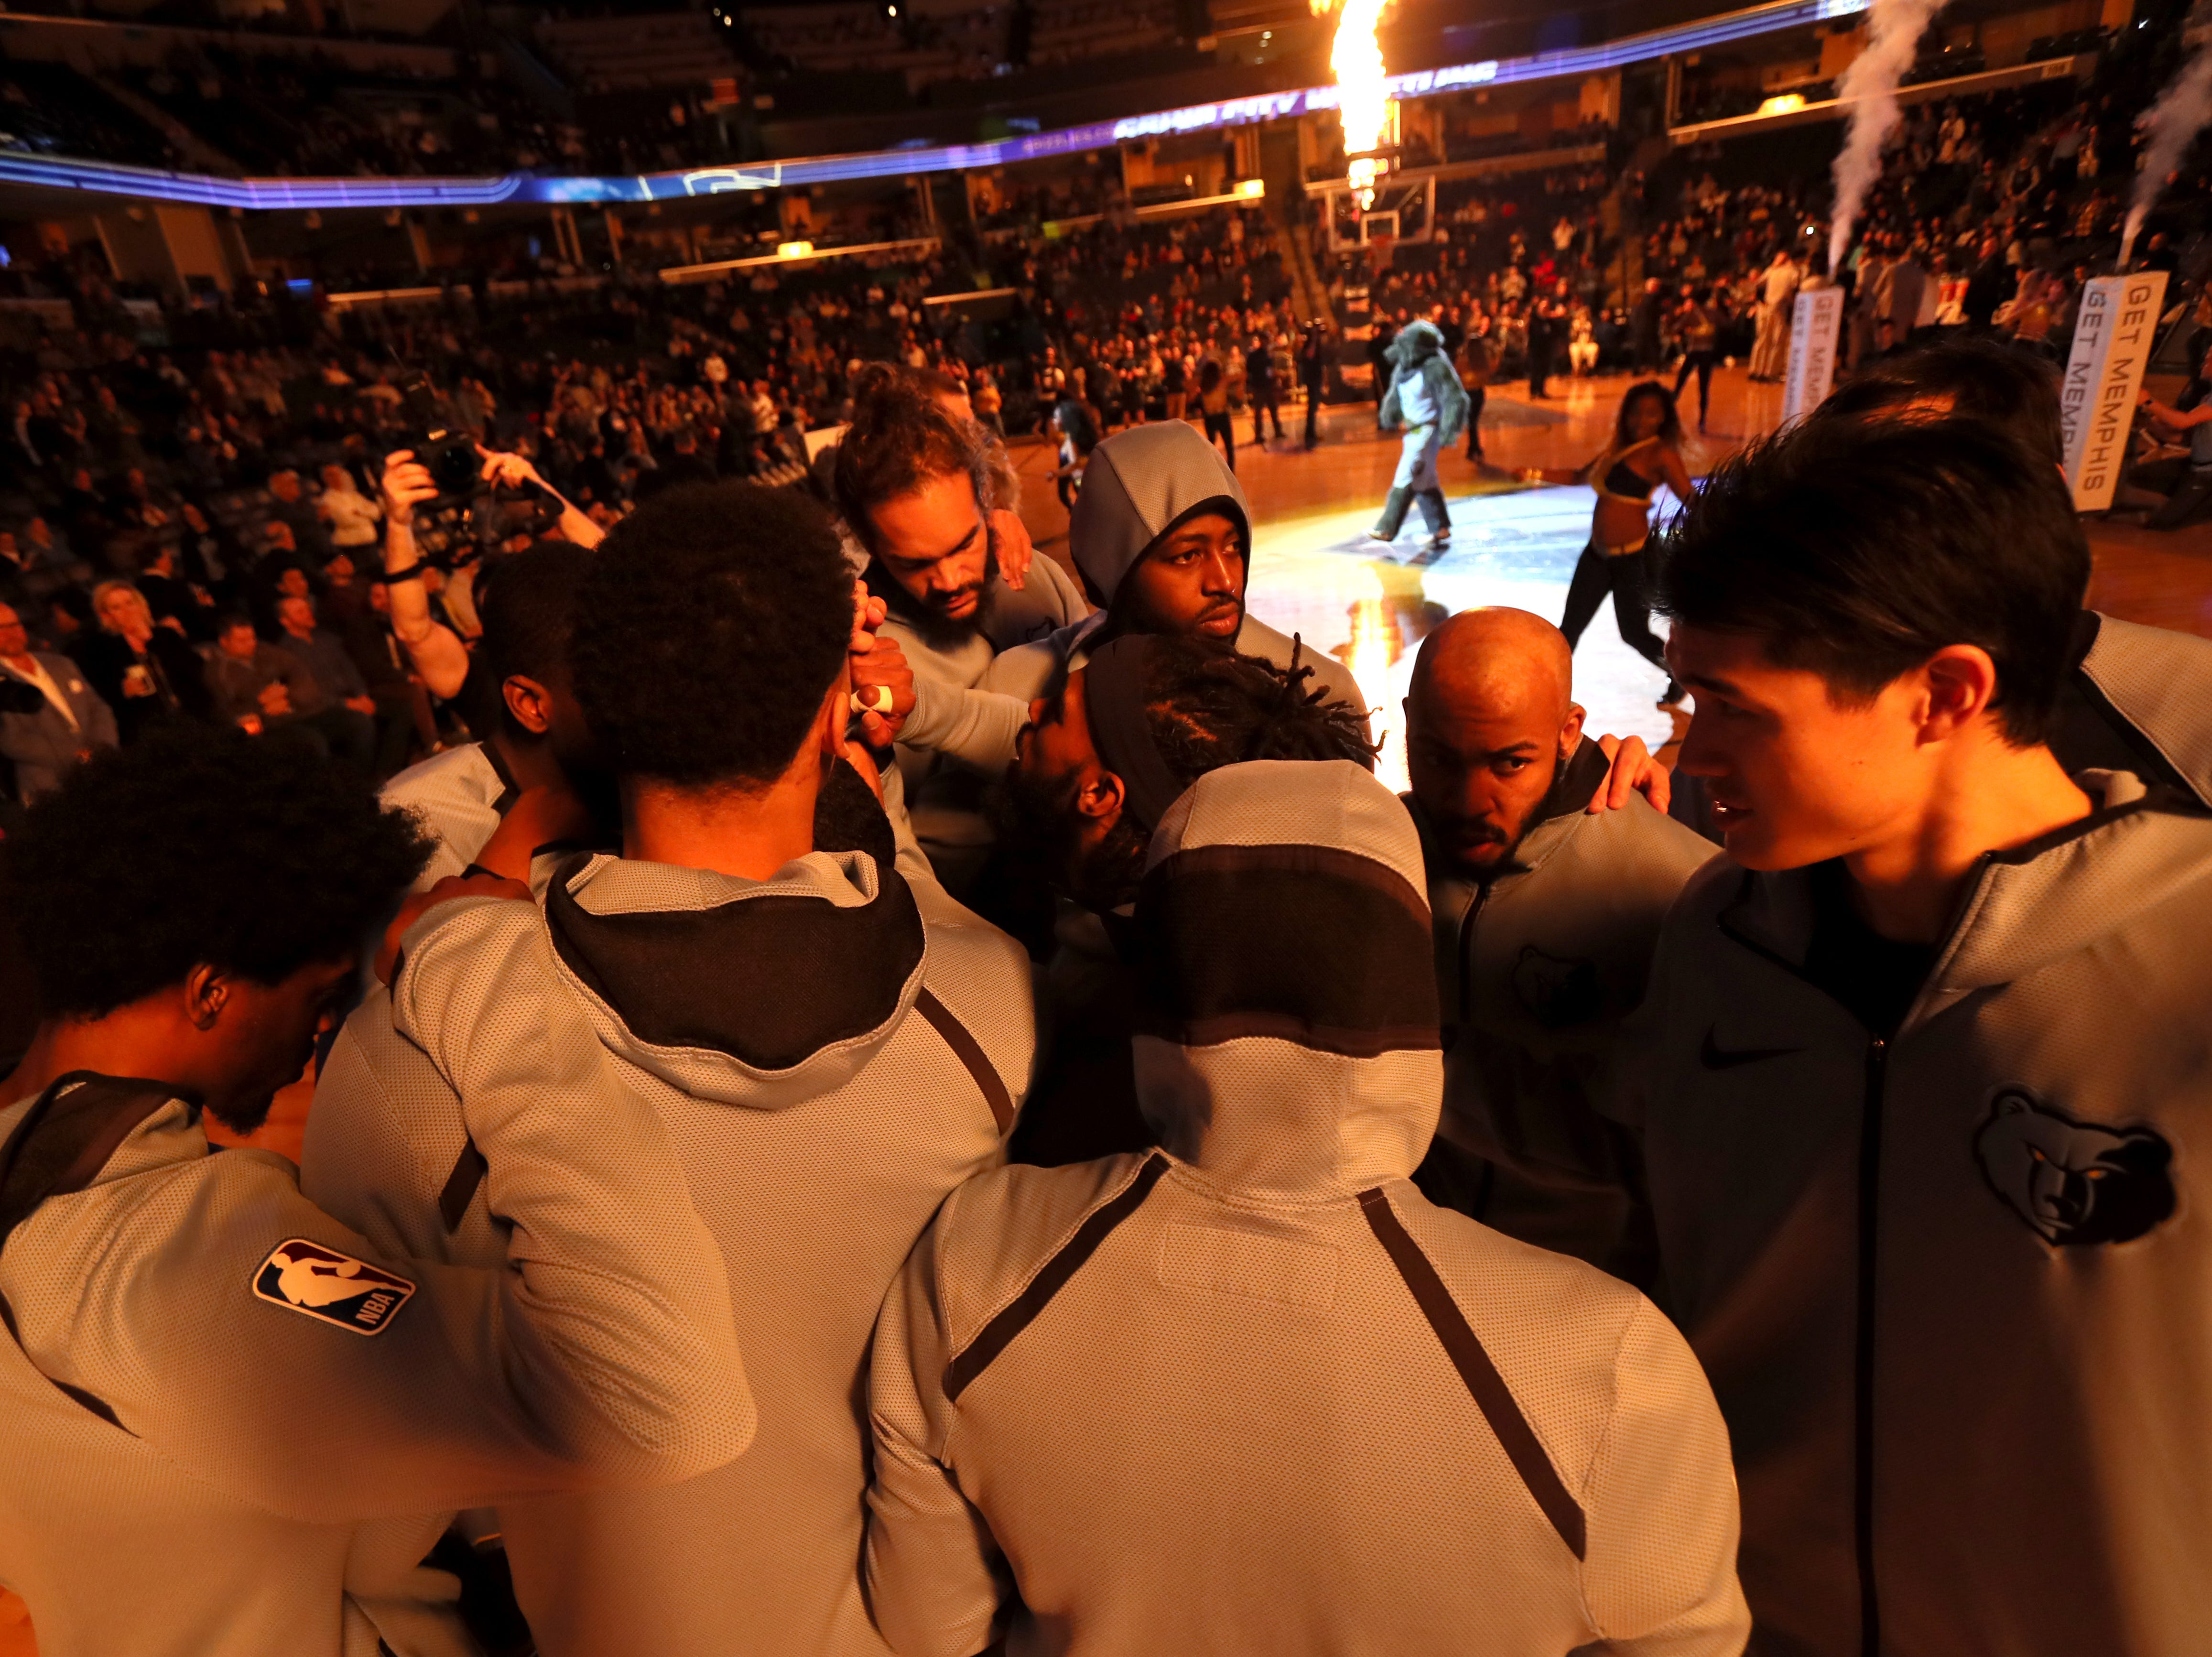 Memphis Grizzlies players huddle up before their game against the San Antonio Spurs at the FedExForum on Wednesday, Jan. 9, 2019.